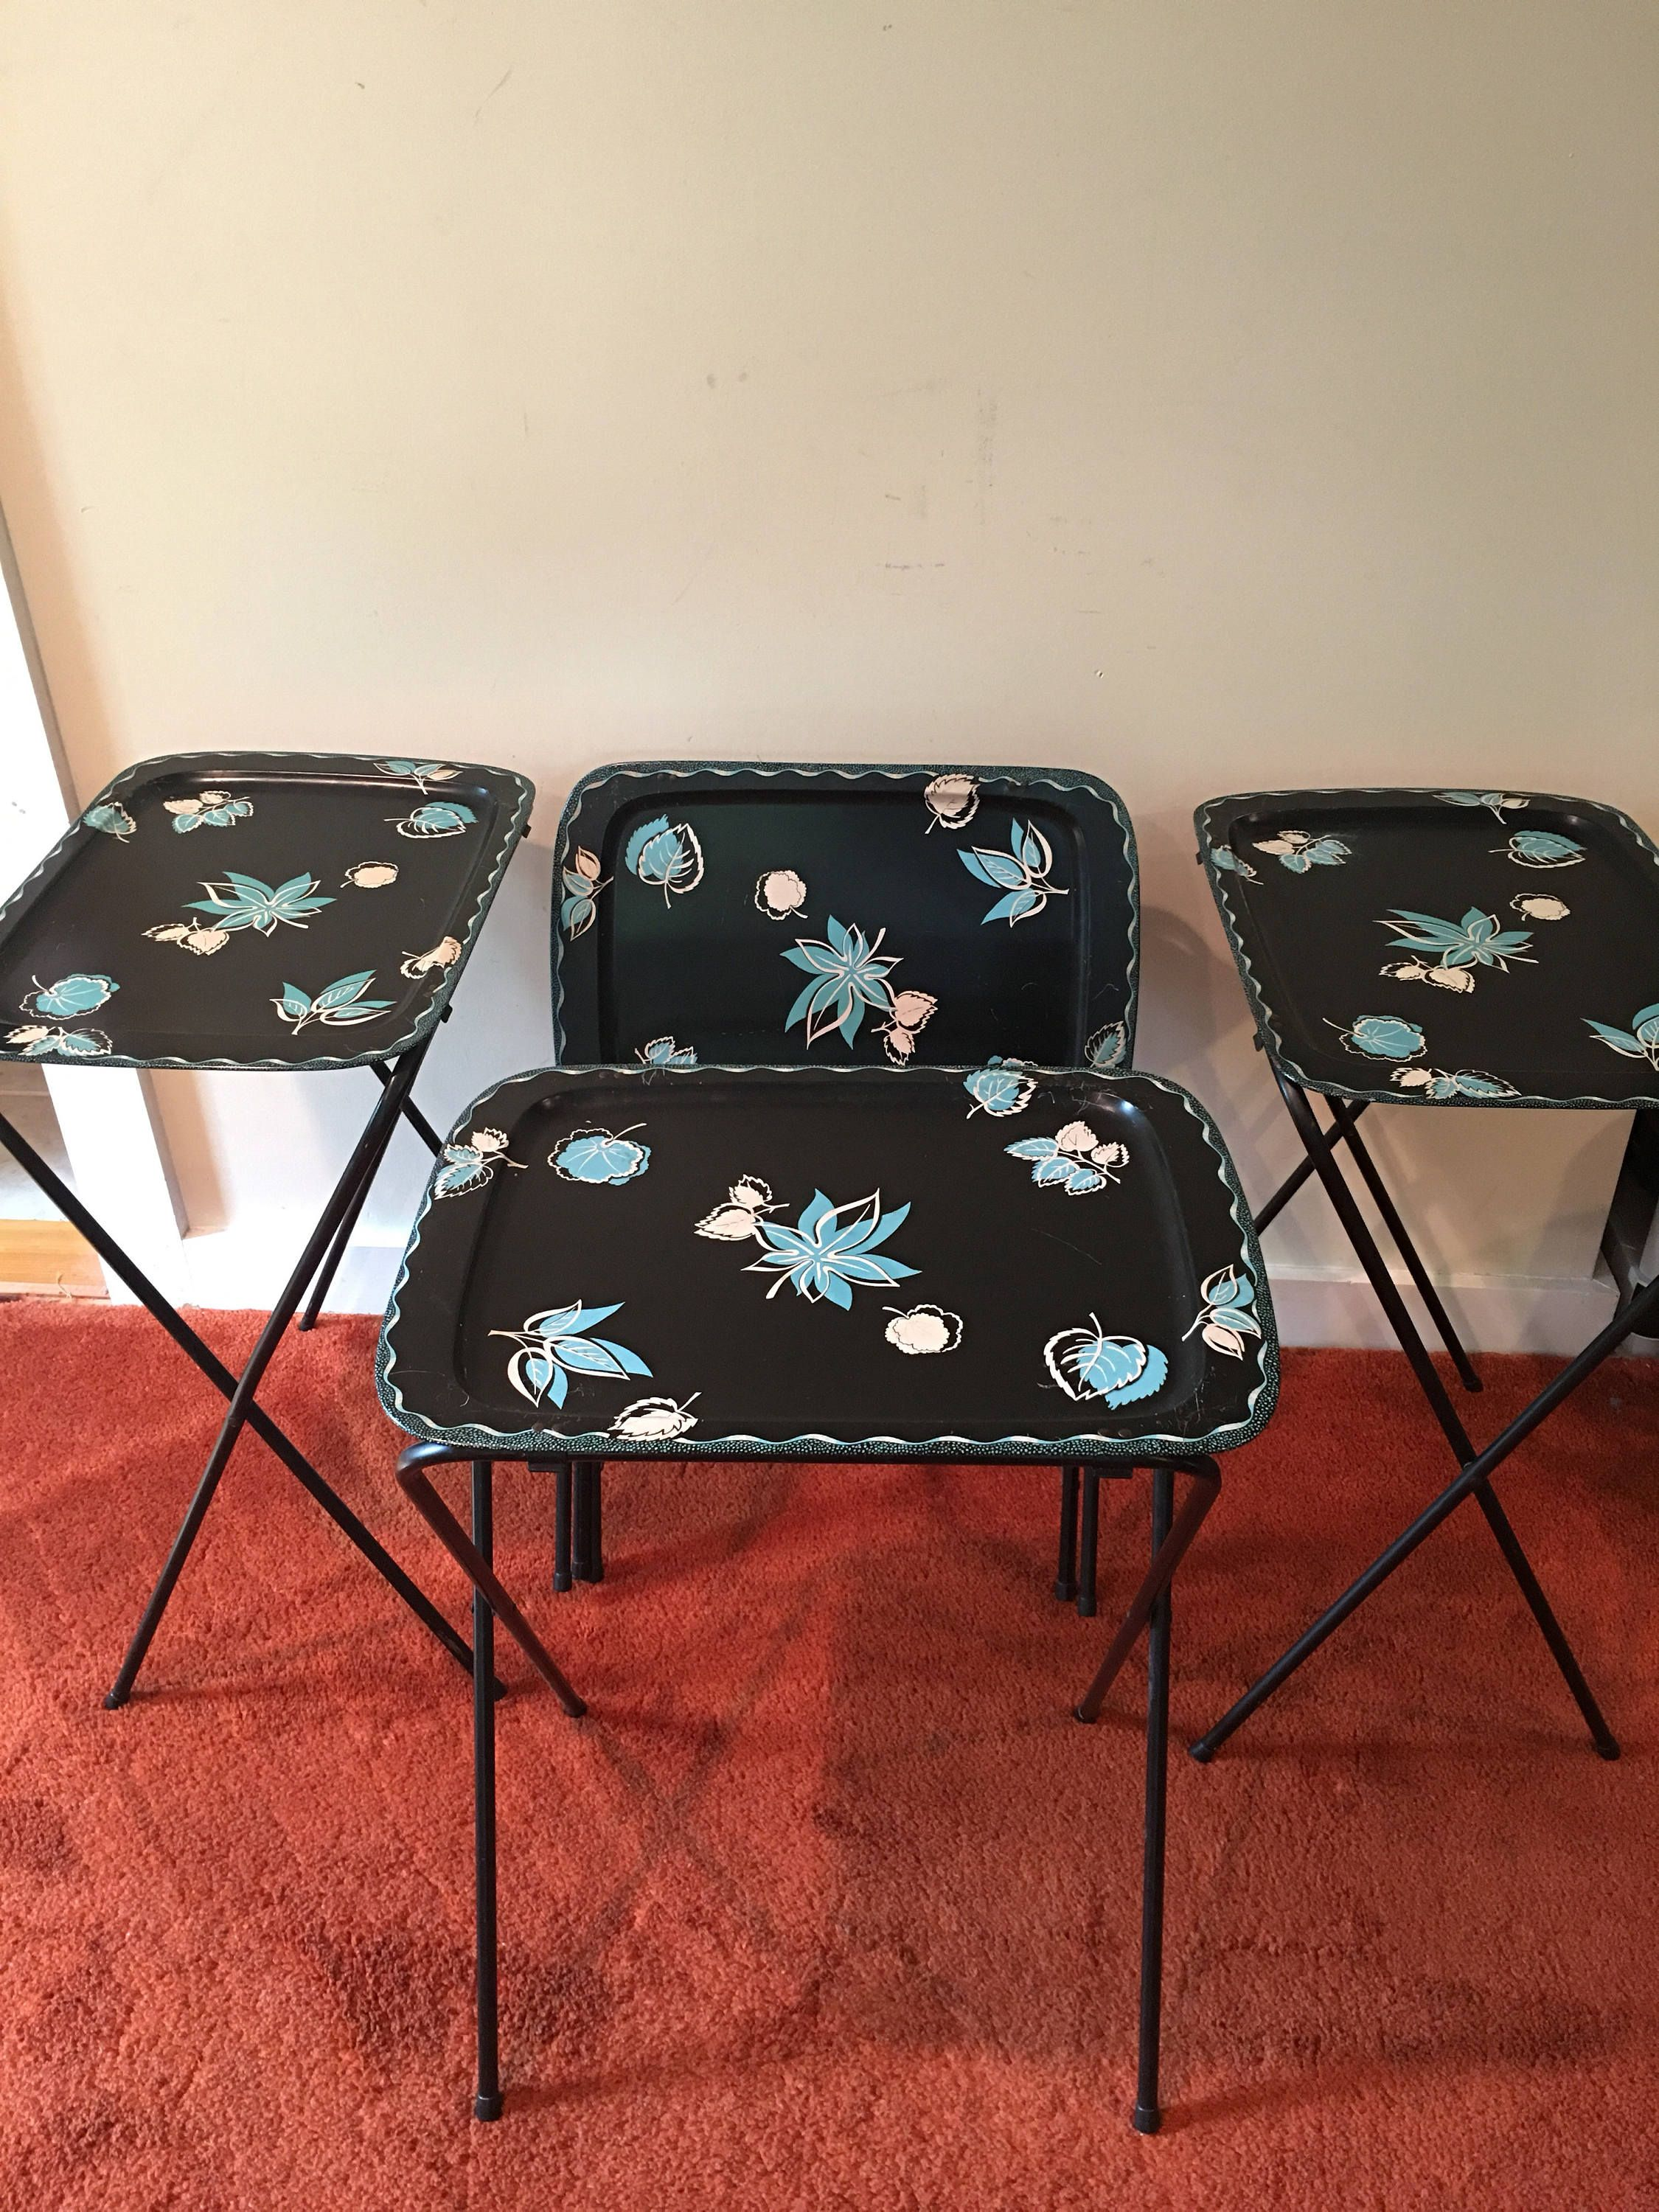 Vintage Mid Century Modern Tv Tray Tables Set Of 4 Self Contained